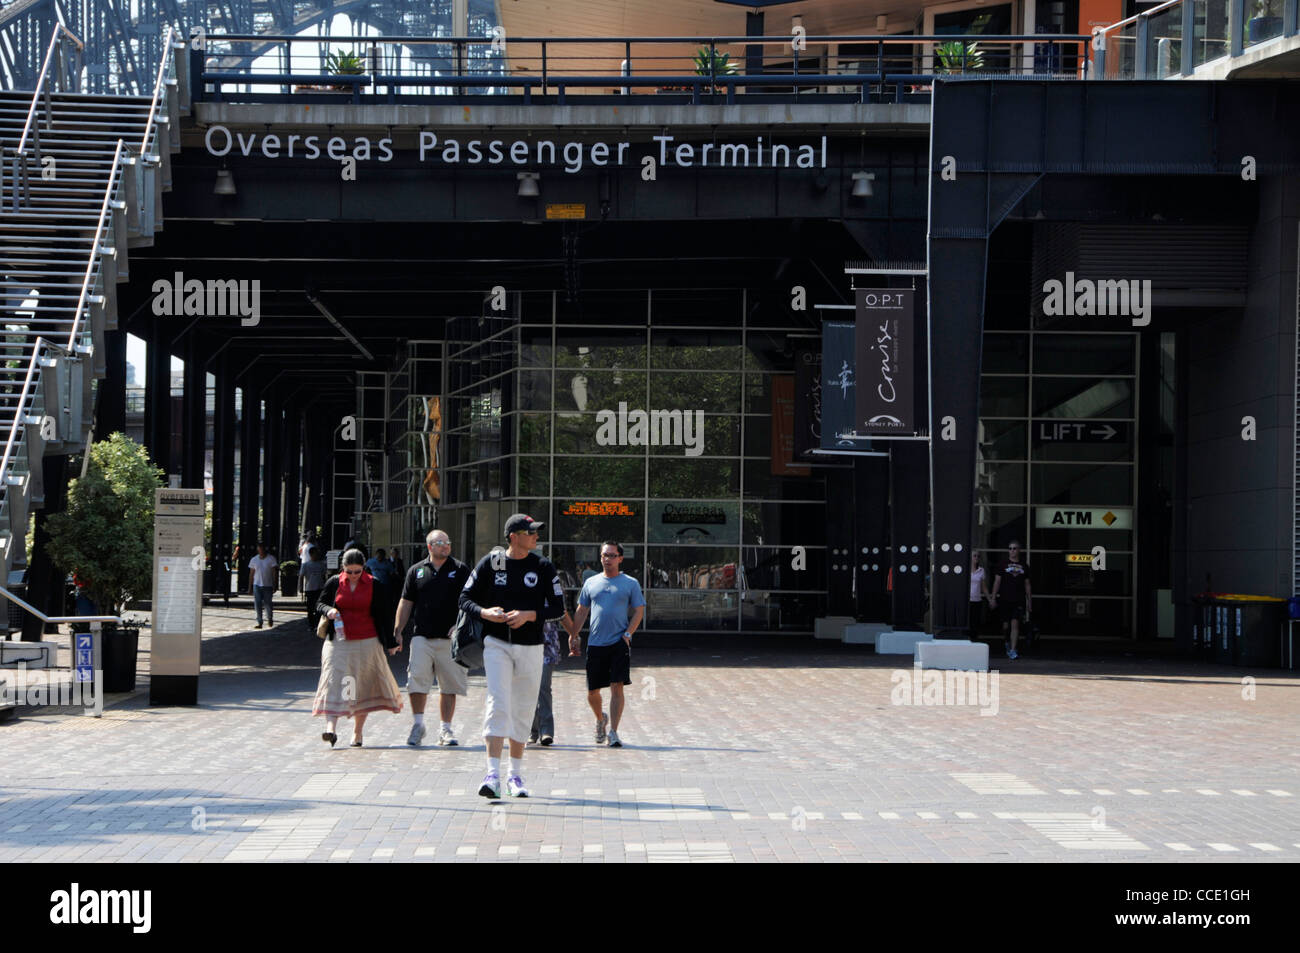 A small group of tourists emerging from the Overseas Passenger Terminal on Circular Quay in Sydney,New South Wales,Australia - Stock Image